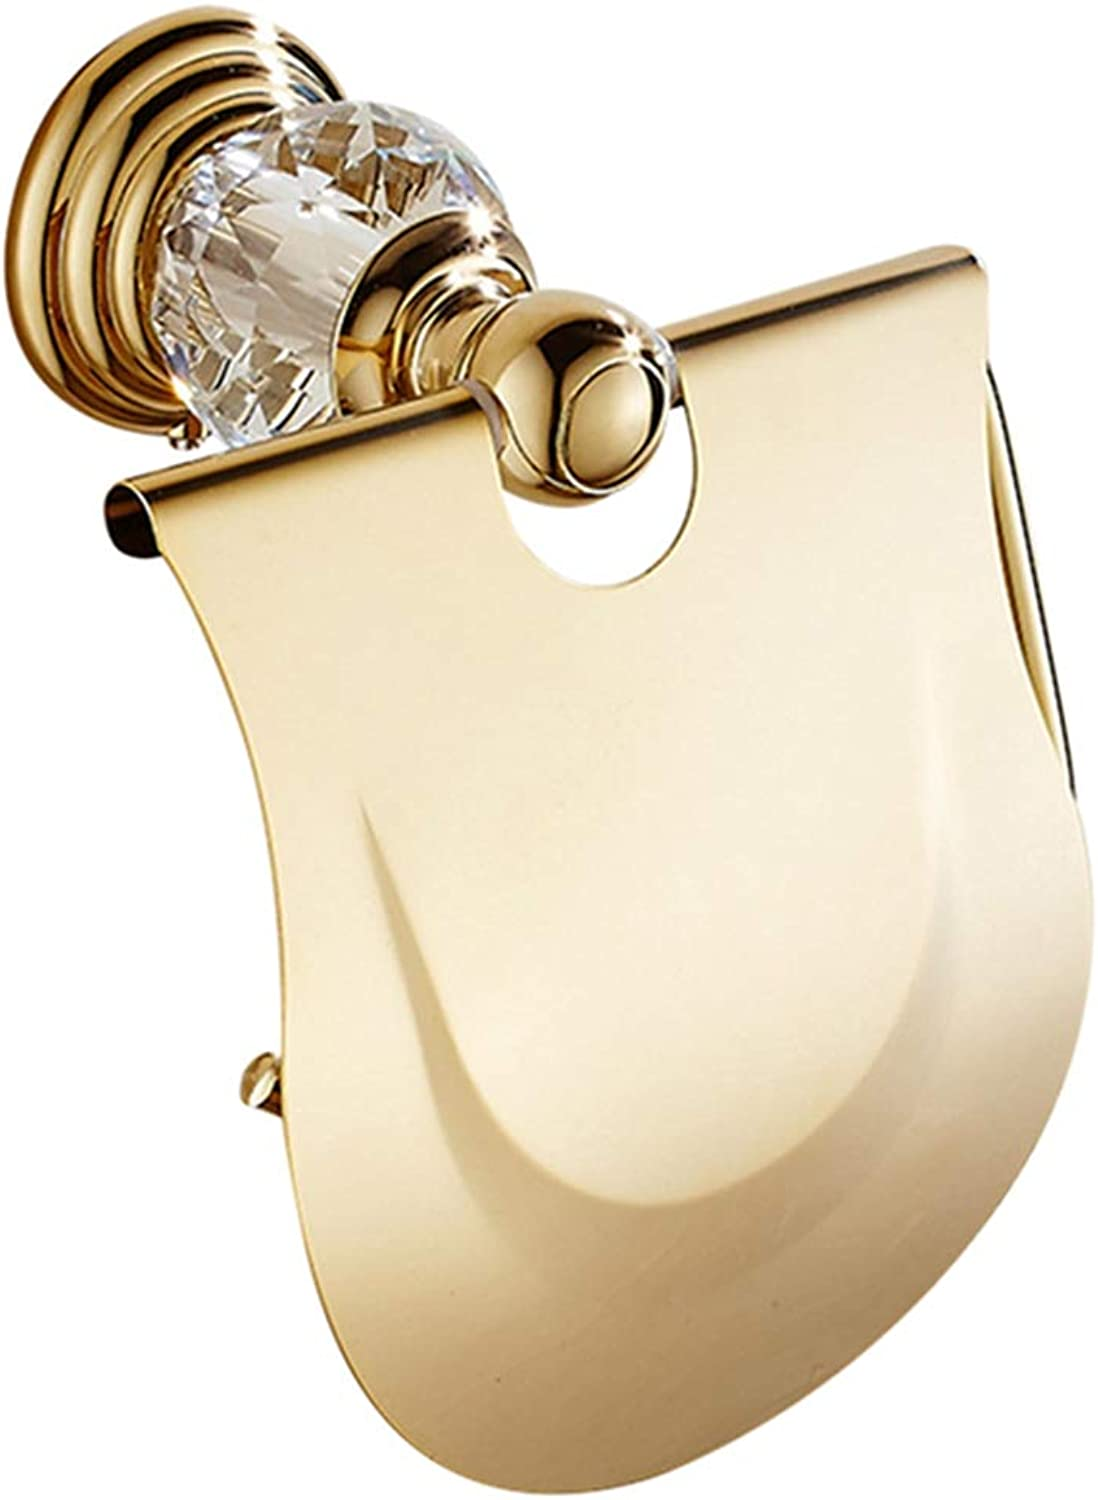 LUDSUY Zinc Alloy Toilet Paper Holder with Cover,Modern Crystal golden Polished Tissue Hanger